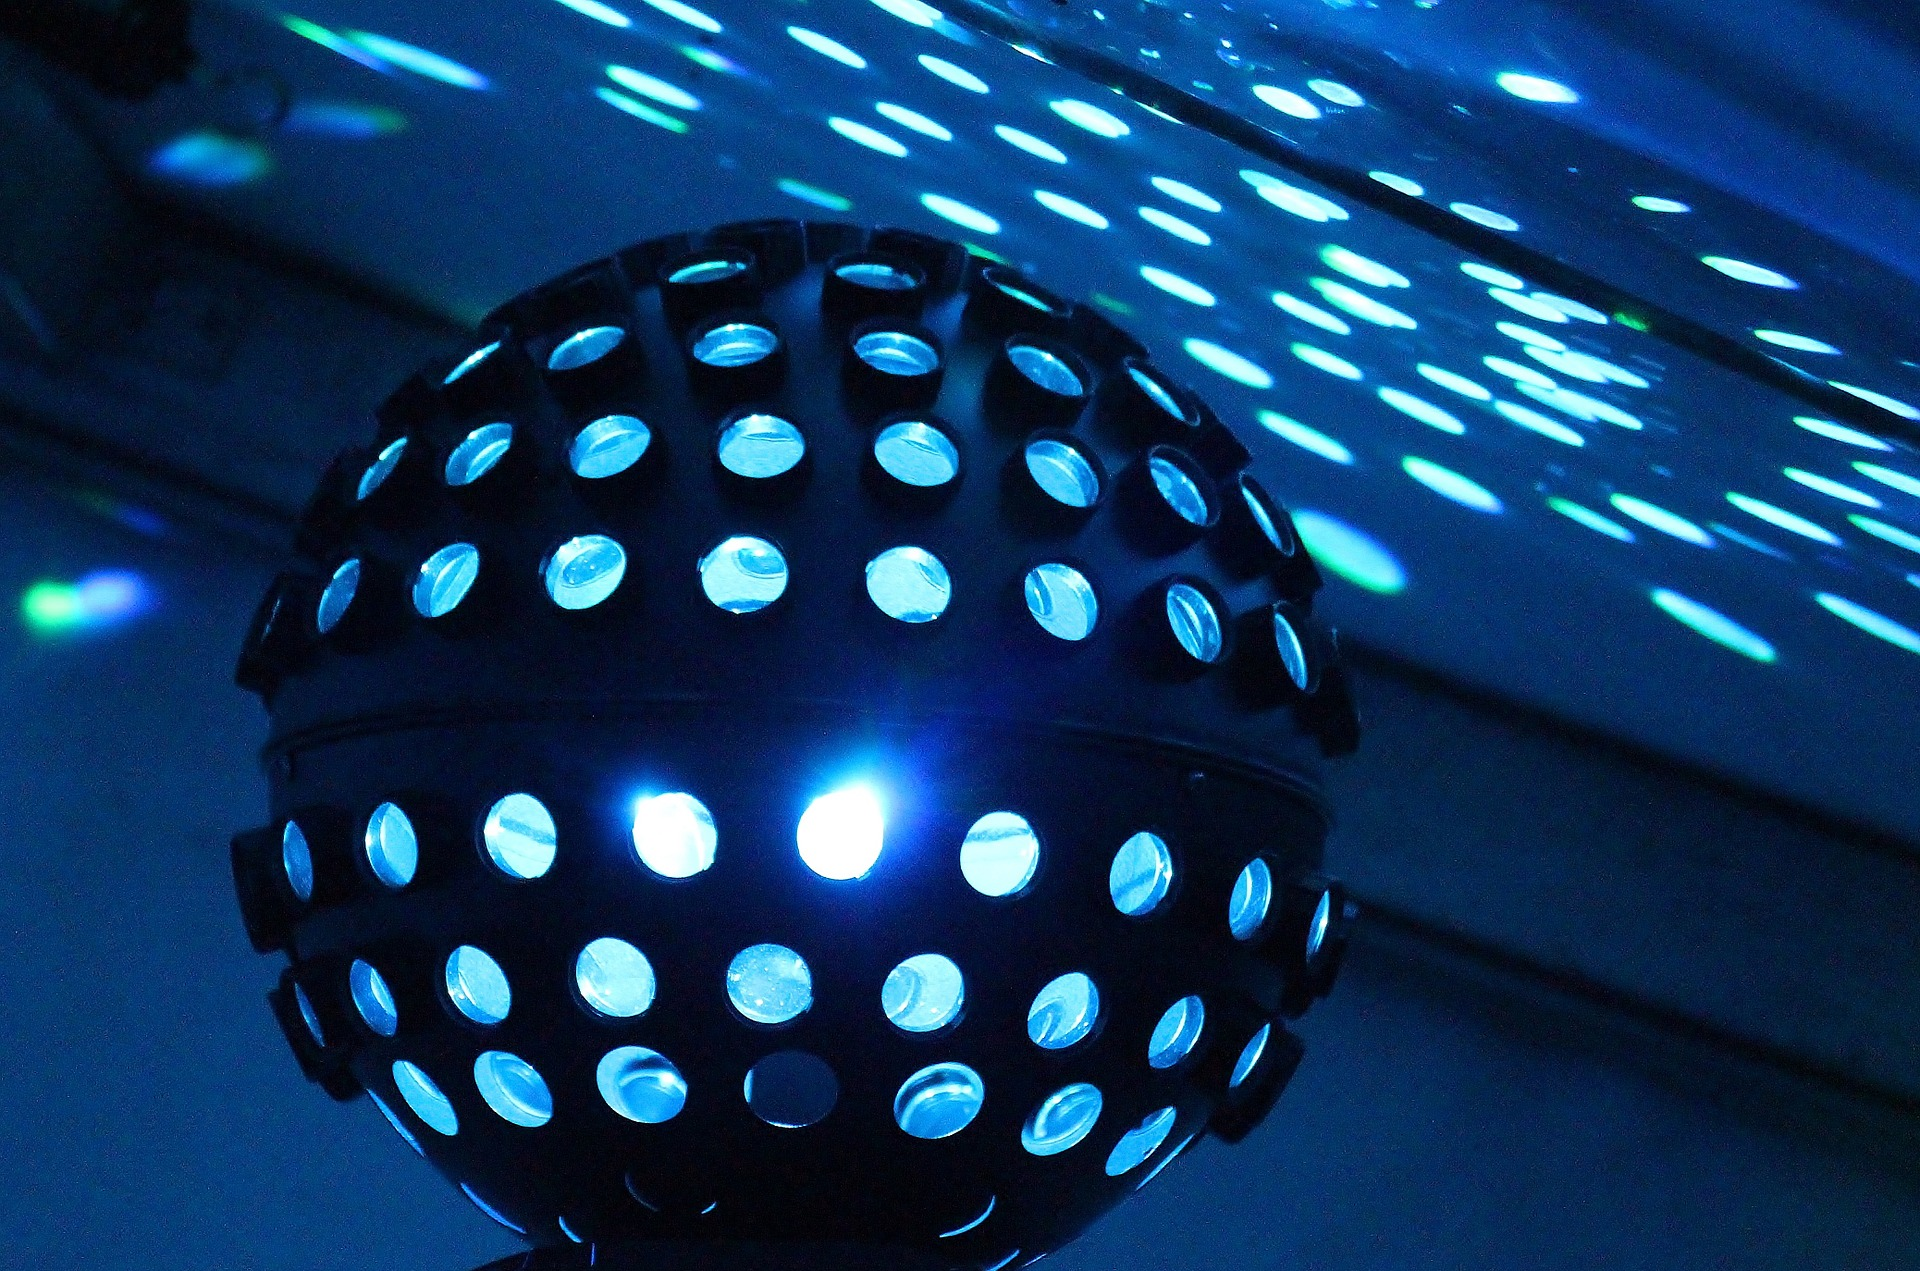 Have an impromptu disco ball dance party (who knew timers could be so fun!